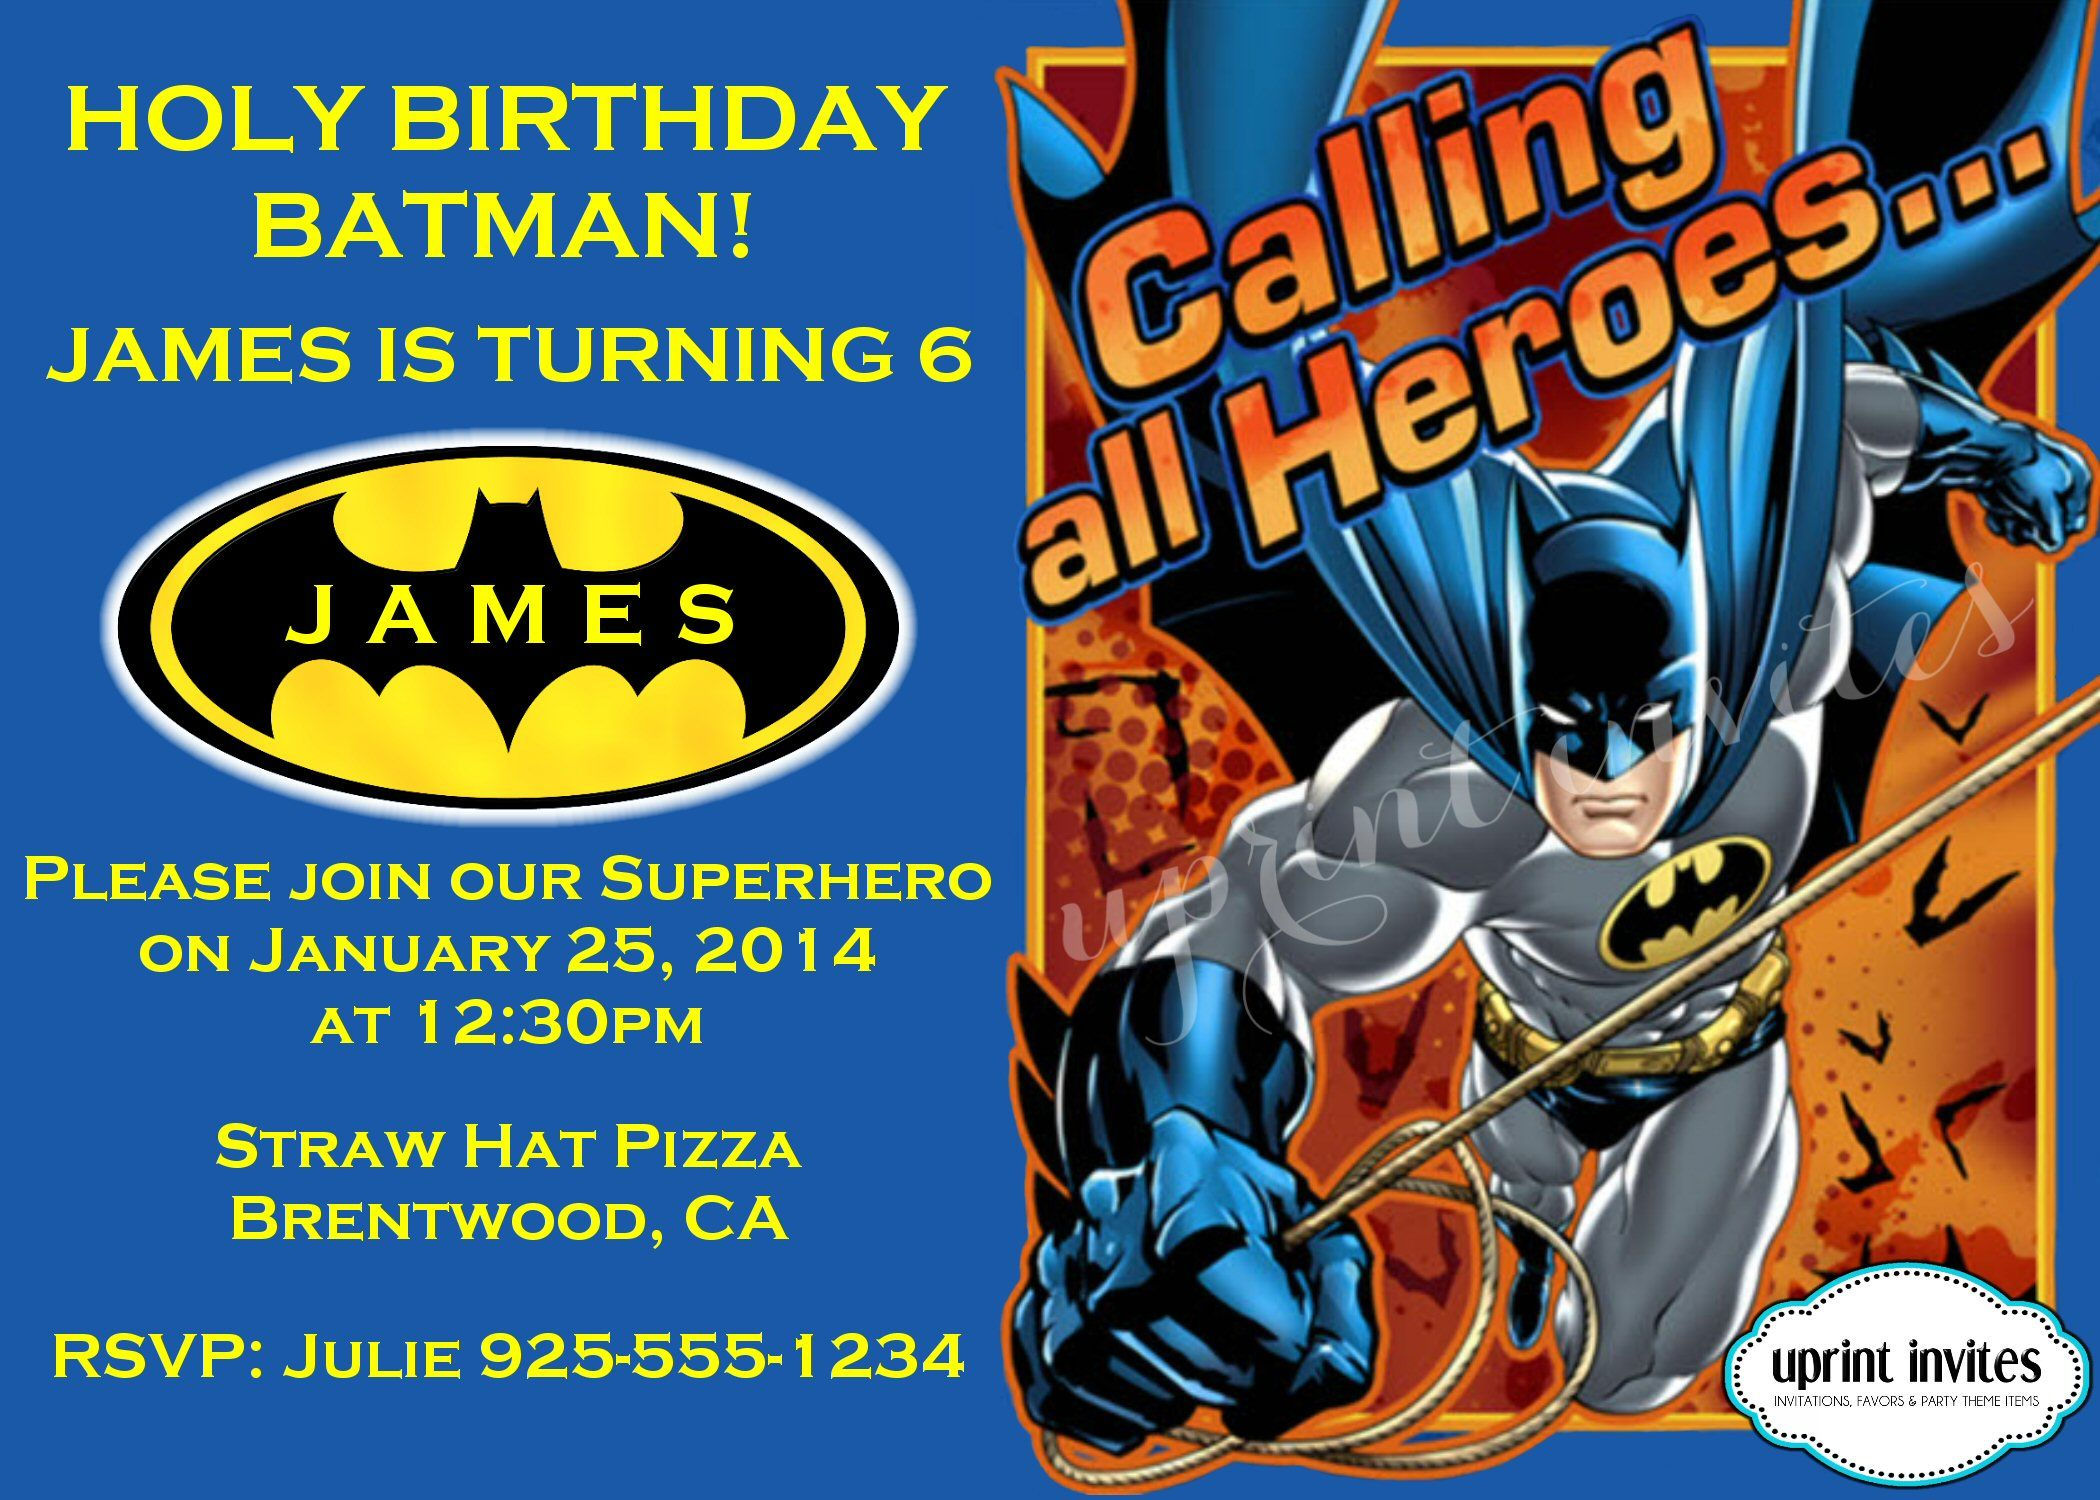 Personalized Invitation Www Facebook Com Uprintinvitations Batman